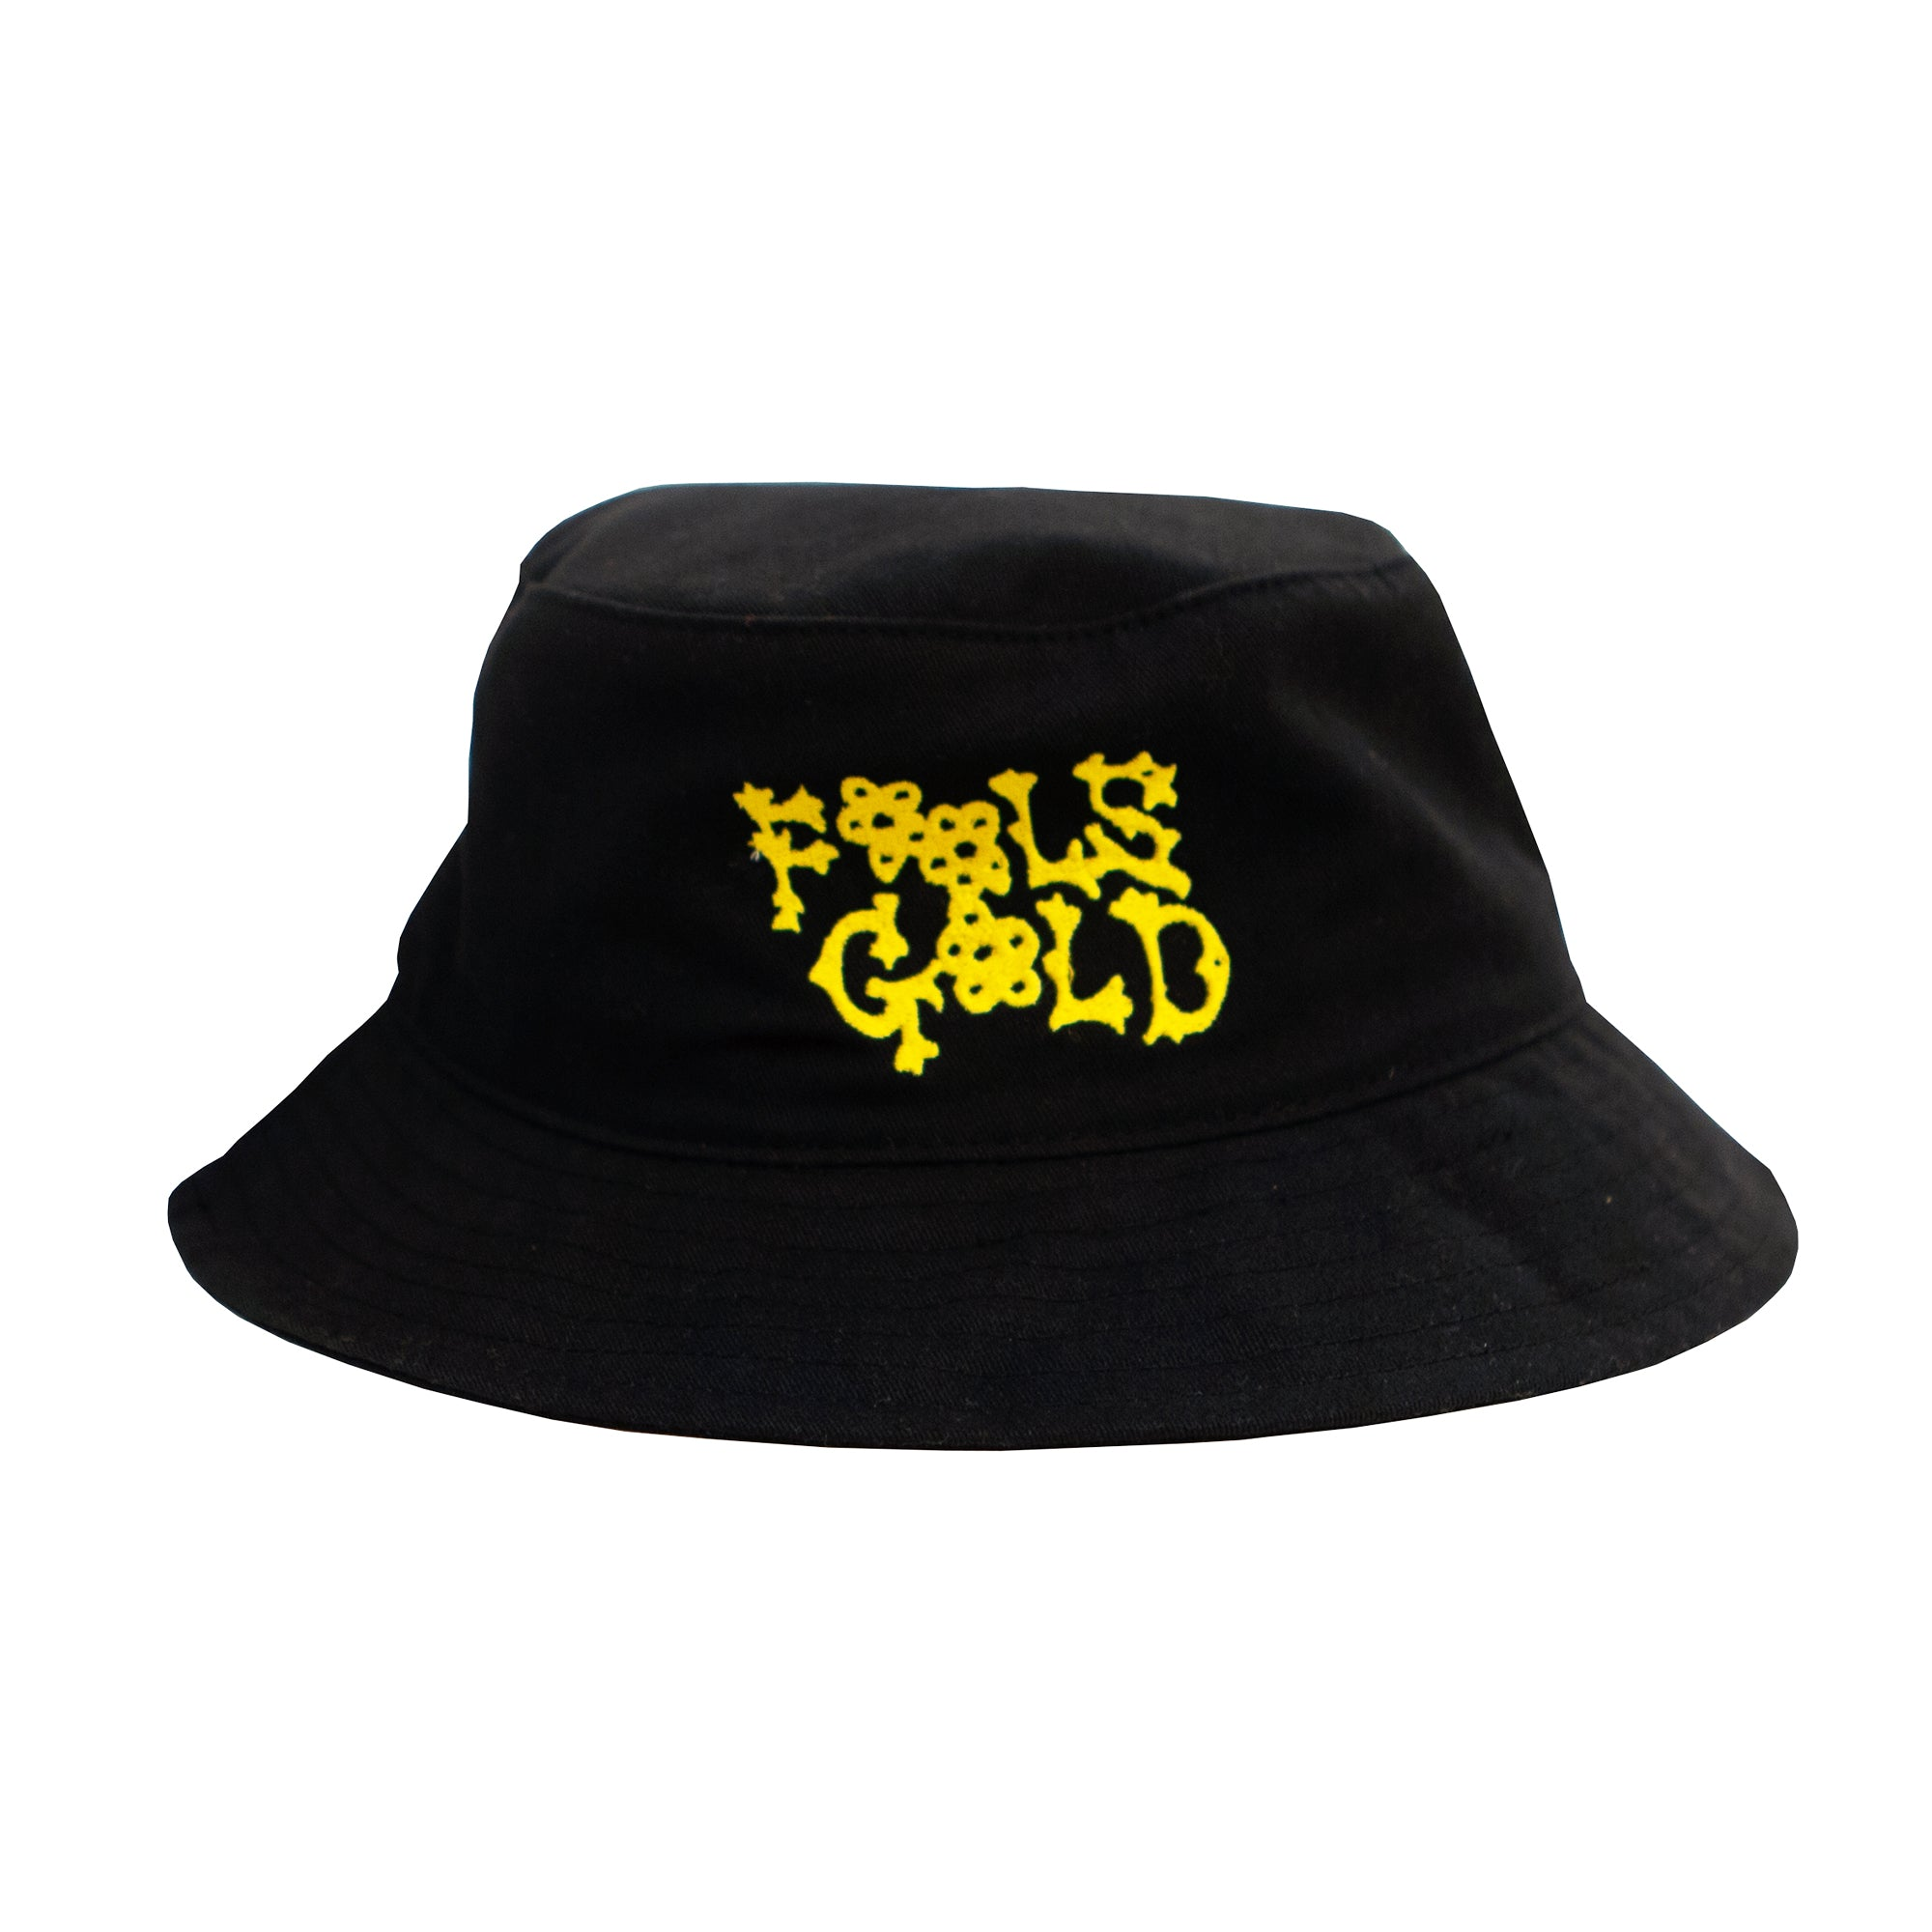 "Fool's Gold ""Flower Child"" Embroidered Bucket Hat"